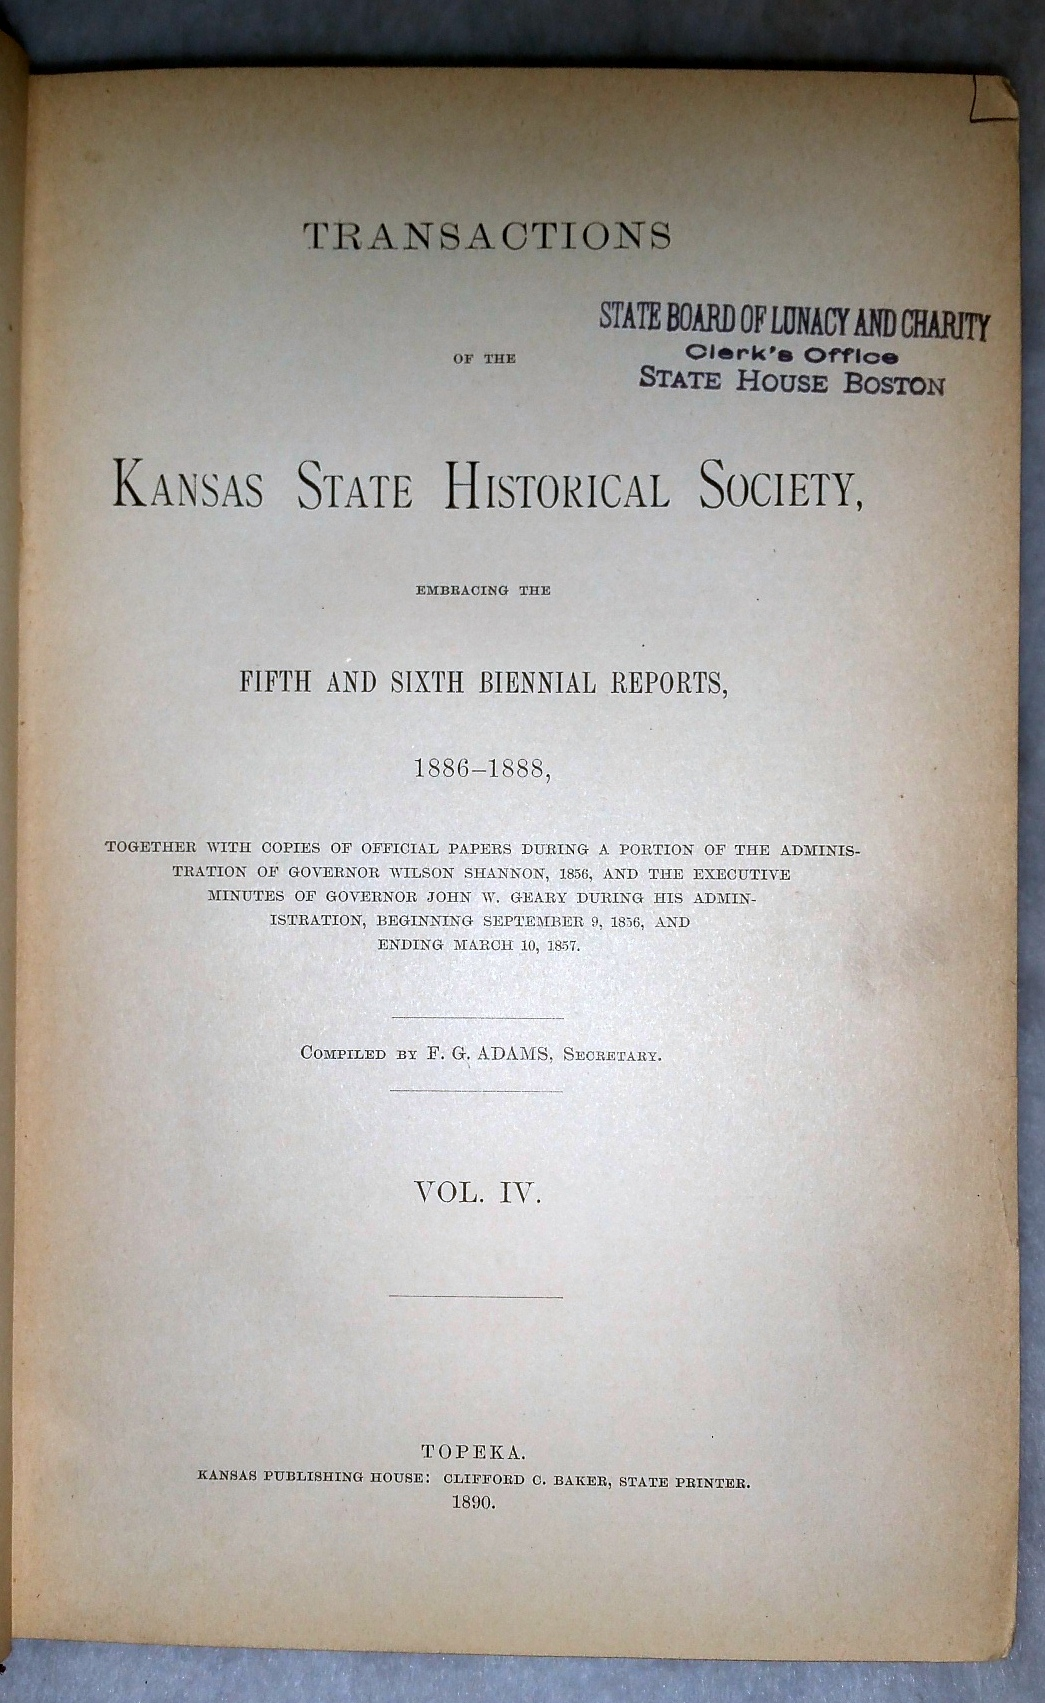 Transactions of the Kansas State Historical Society, Embracing the Fifth and Sixth Biennial Reports, 1886-1888... Vol. IV. (Kansas Historical Collections, Vol 4)